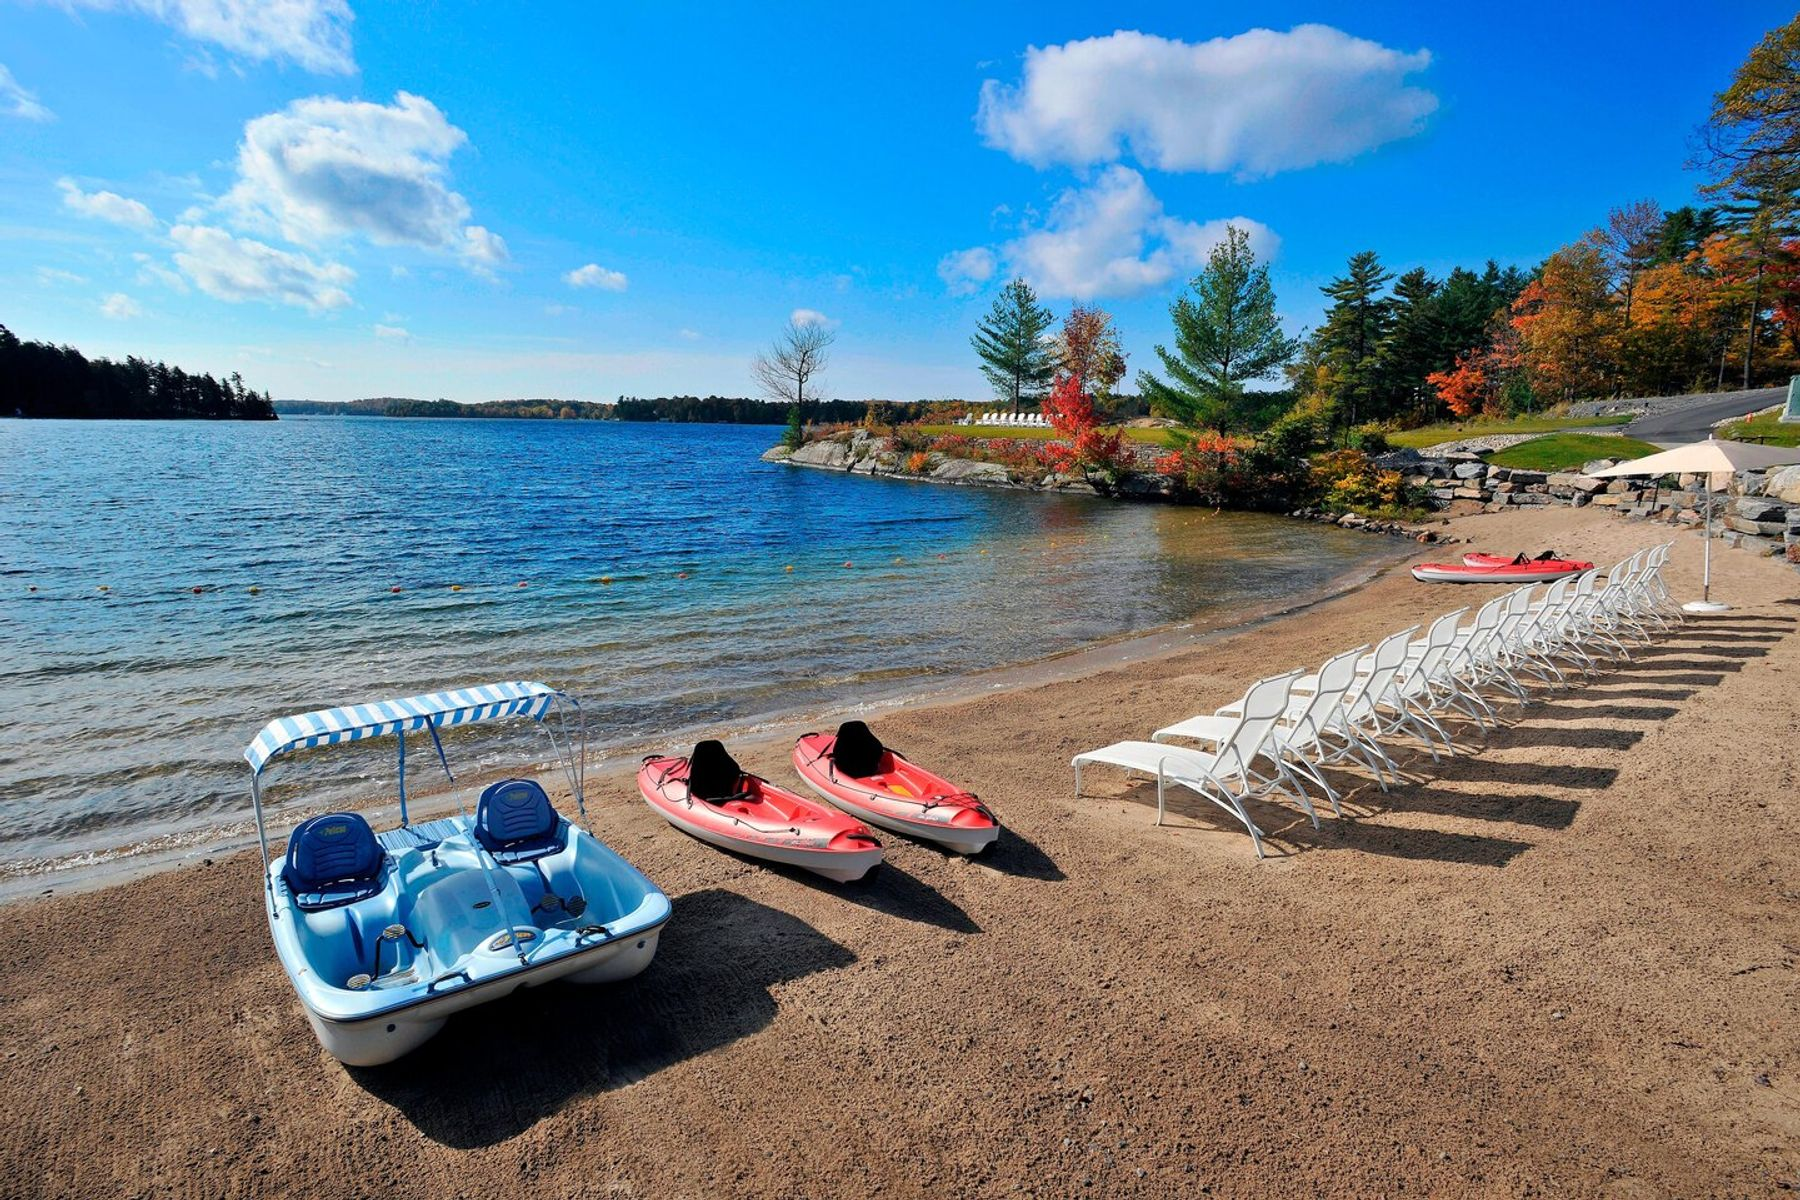 Best beach hotel views at J W Muskoka with kayaks, paddle boards and lounging chairs by the water